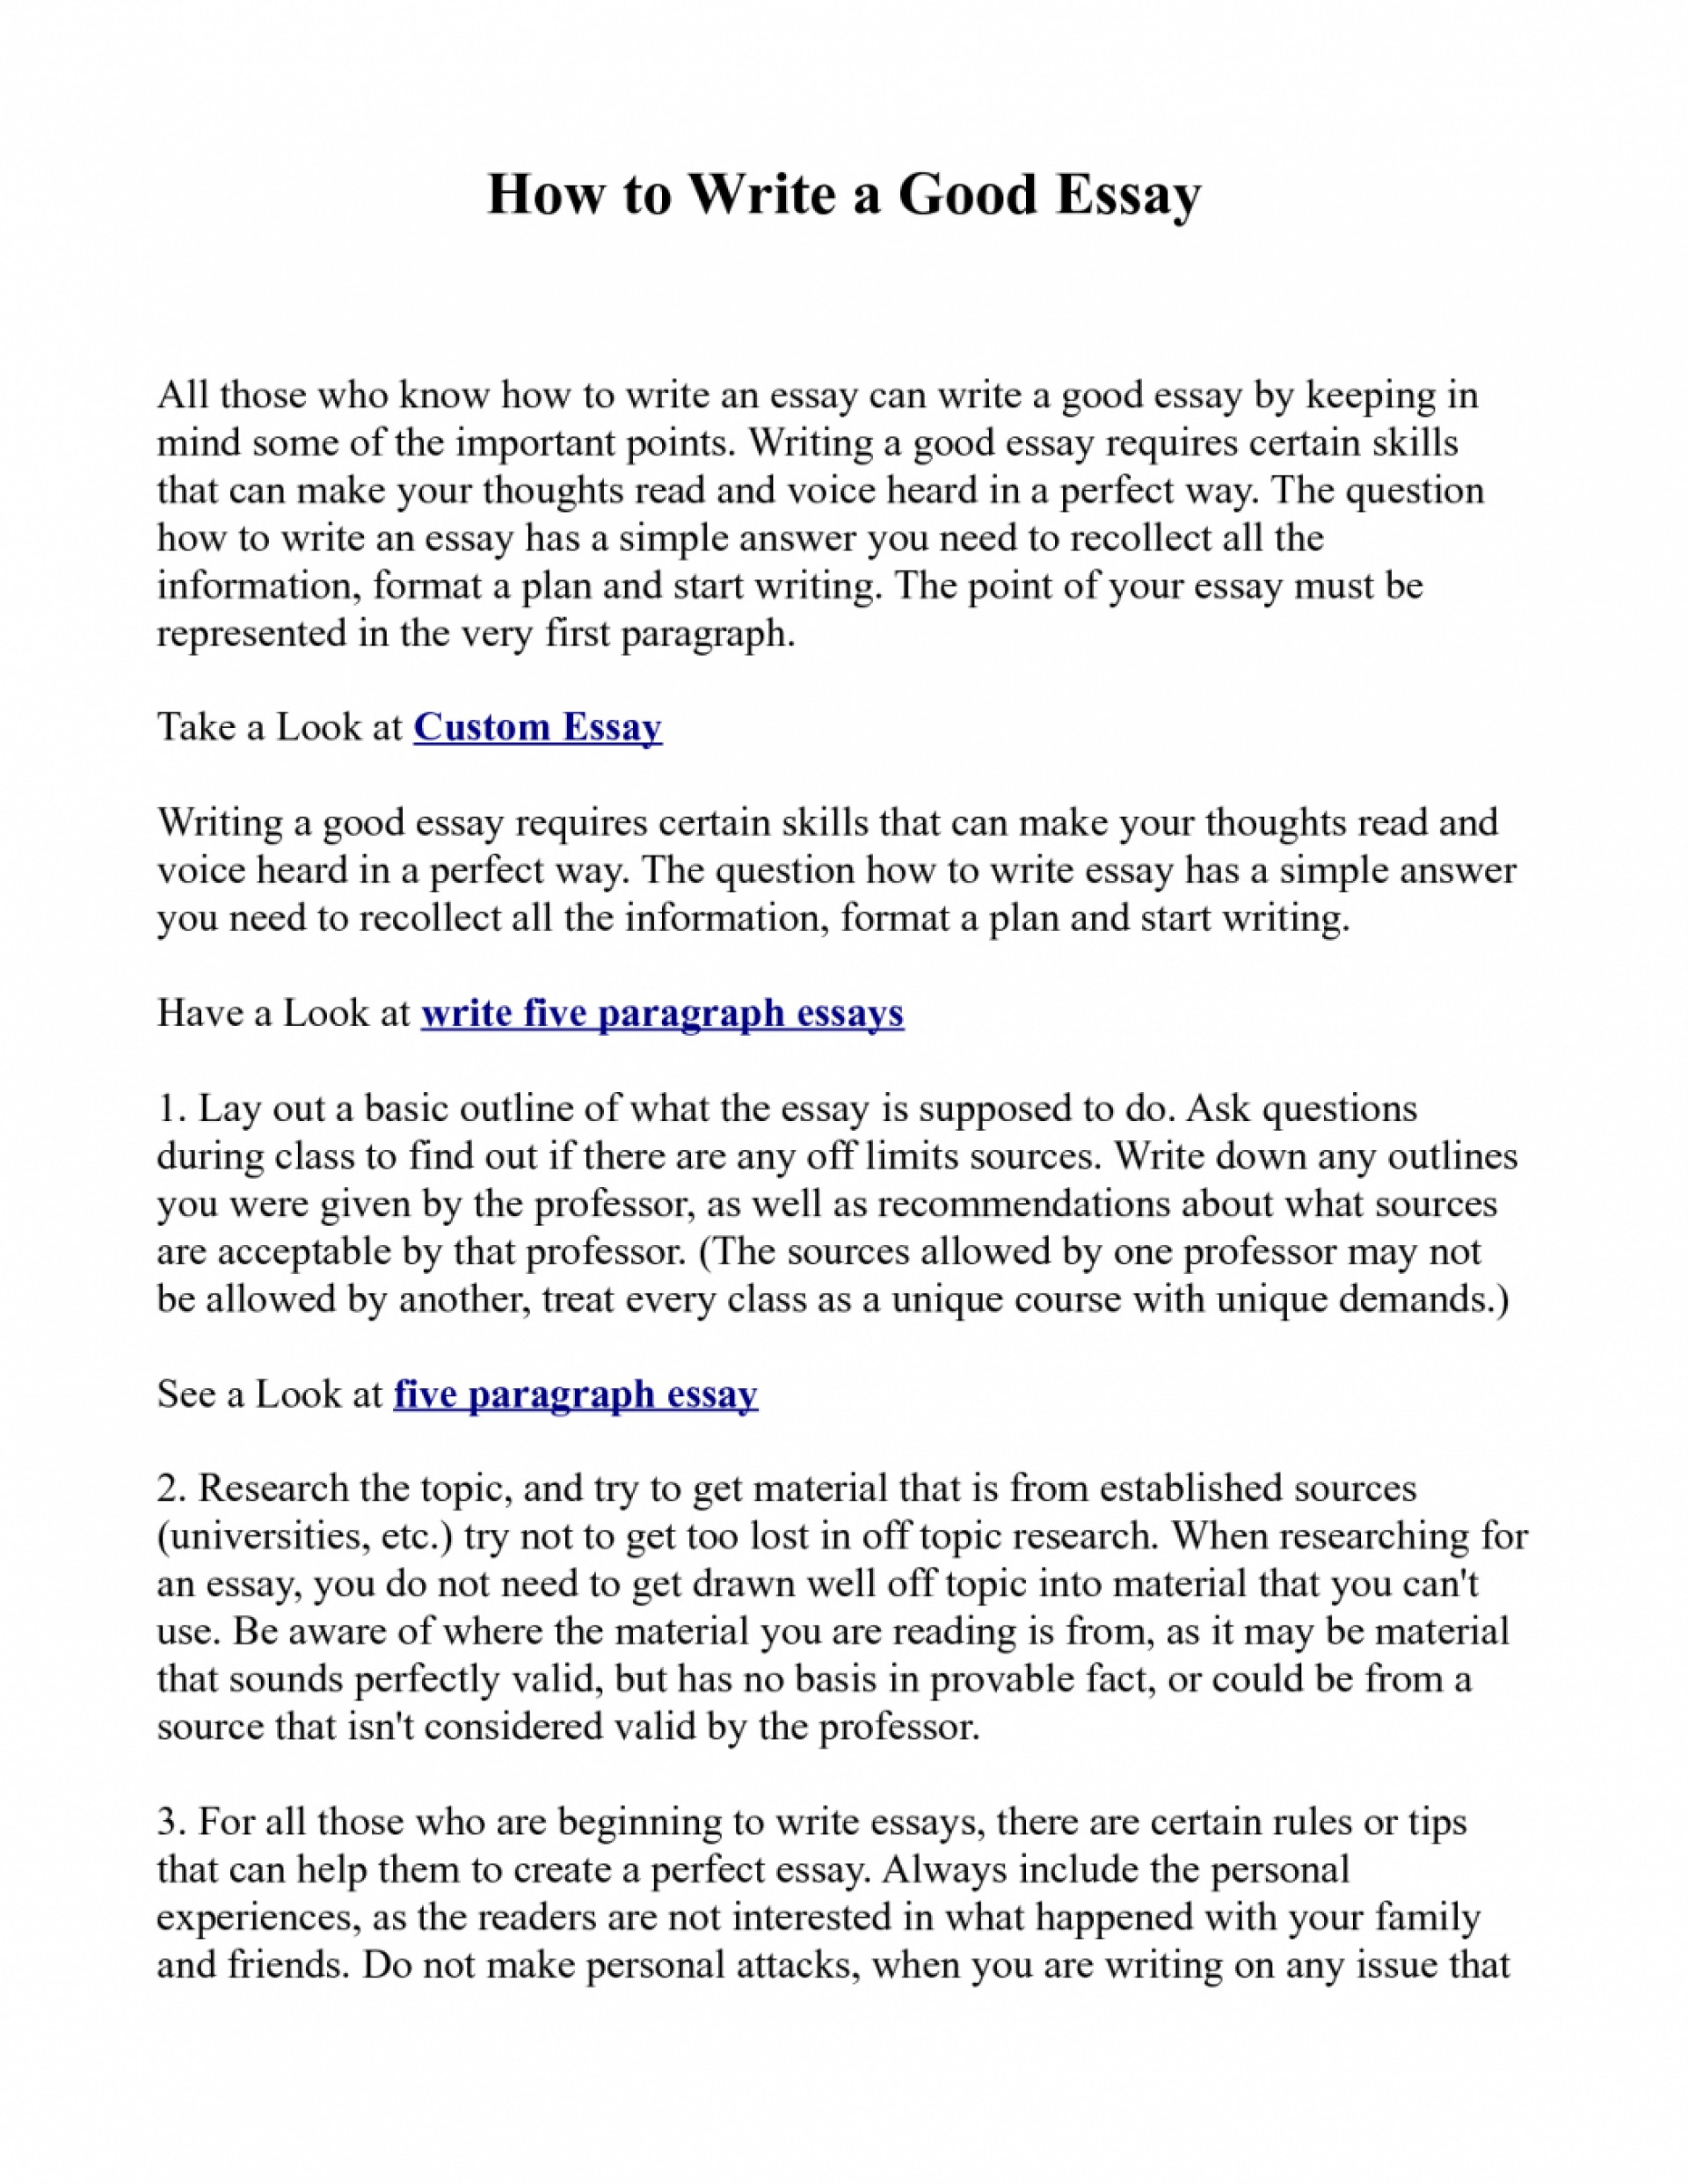 006 Essay Example How To Write Great Essays An Excellent The Perfect Easy Way Ex1id Best Awesome A In Hour Good Personal For College Application 1920